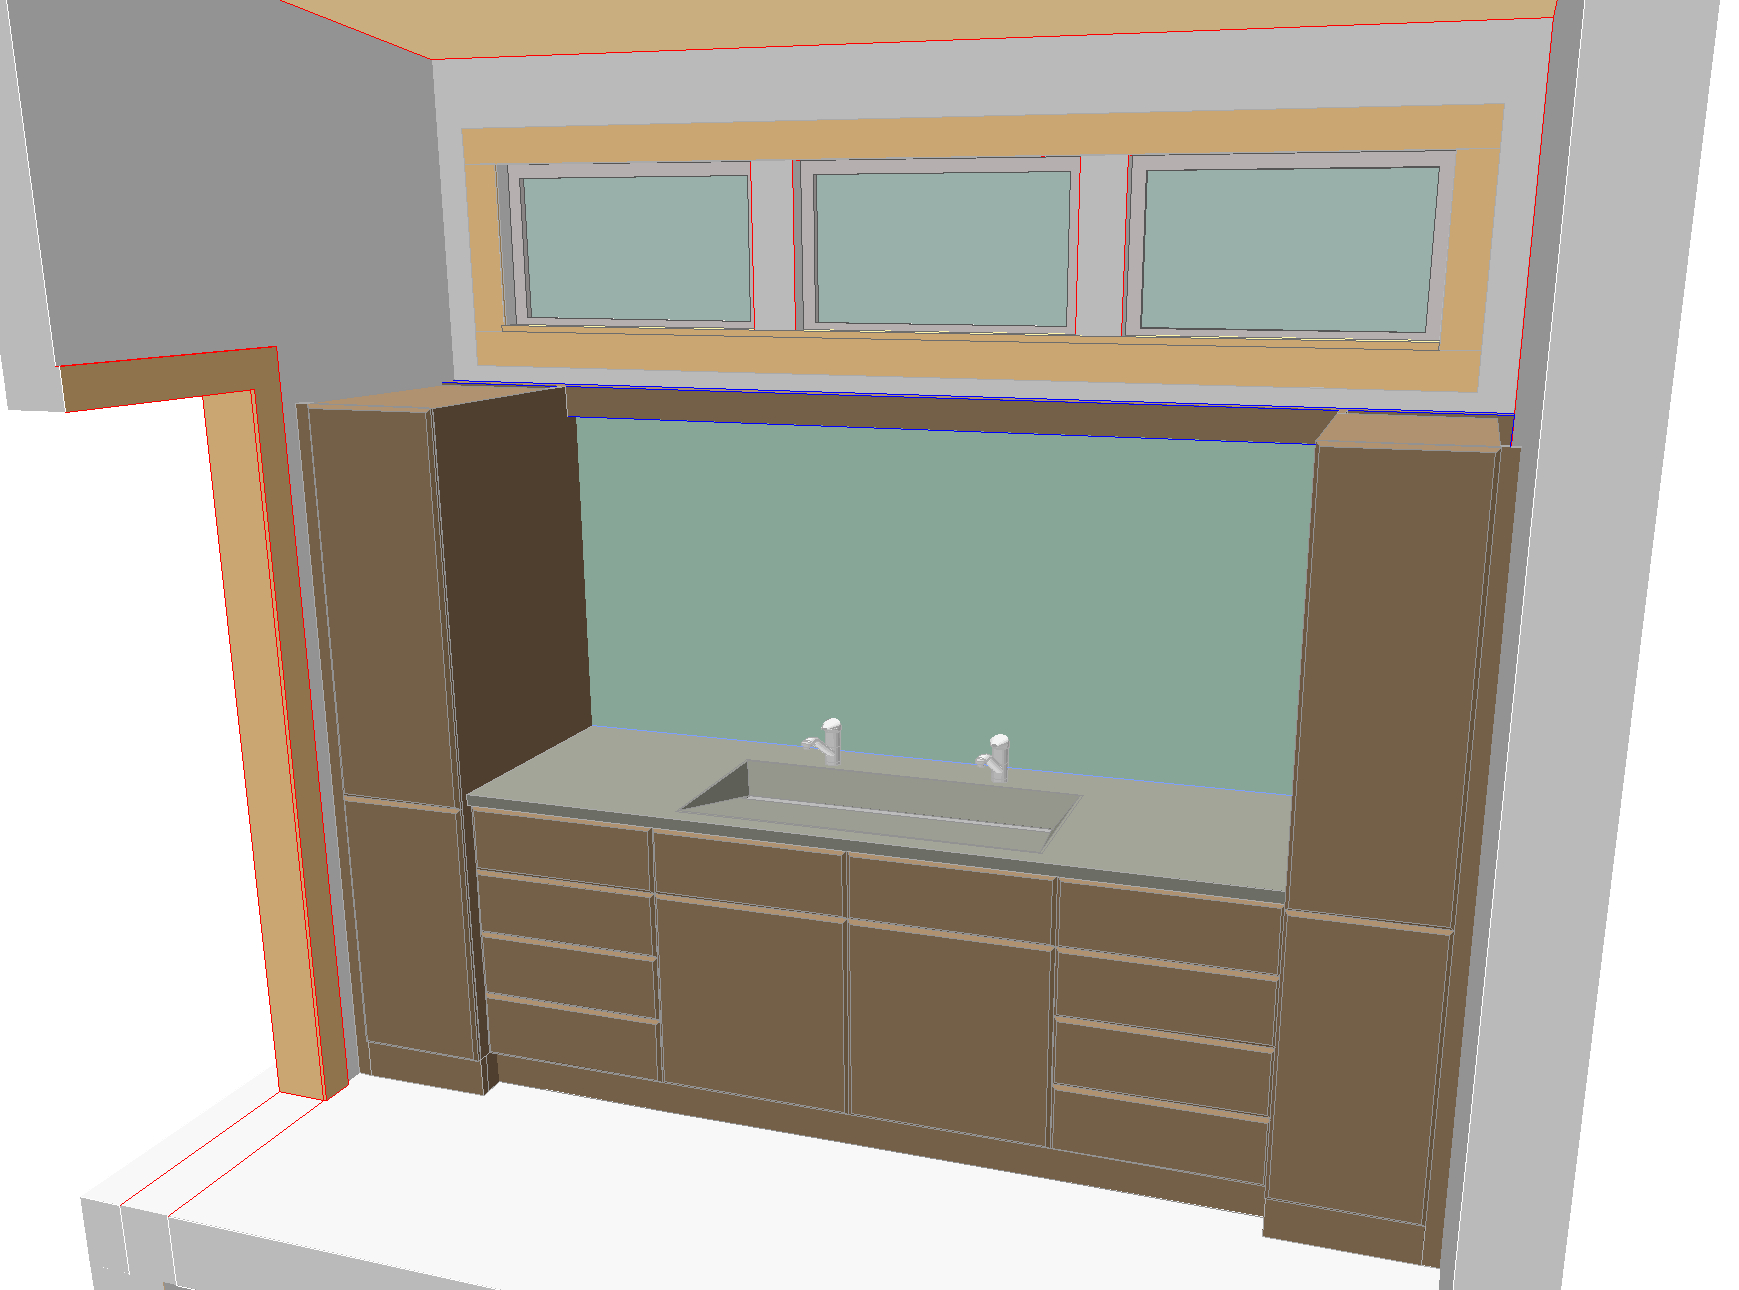 Rendering of Cabinets